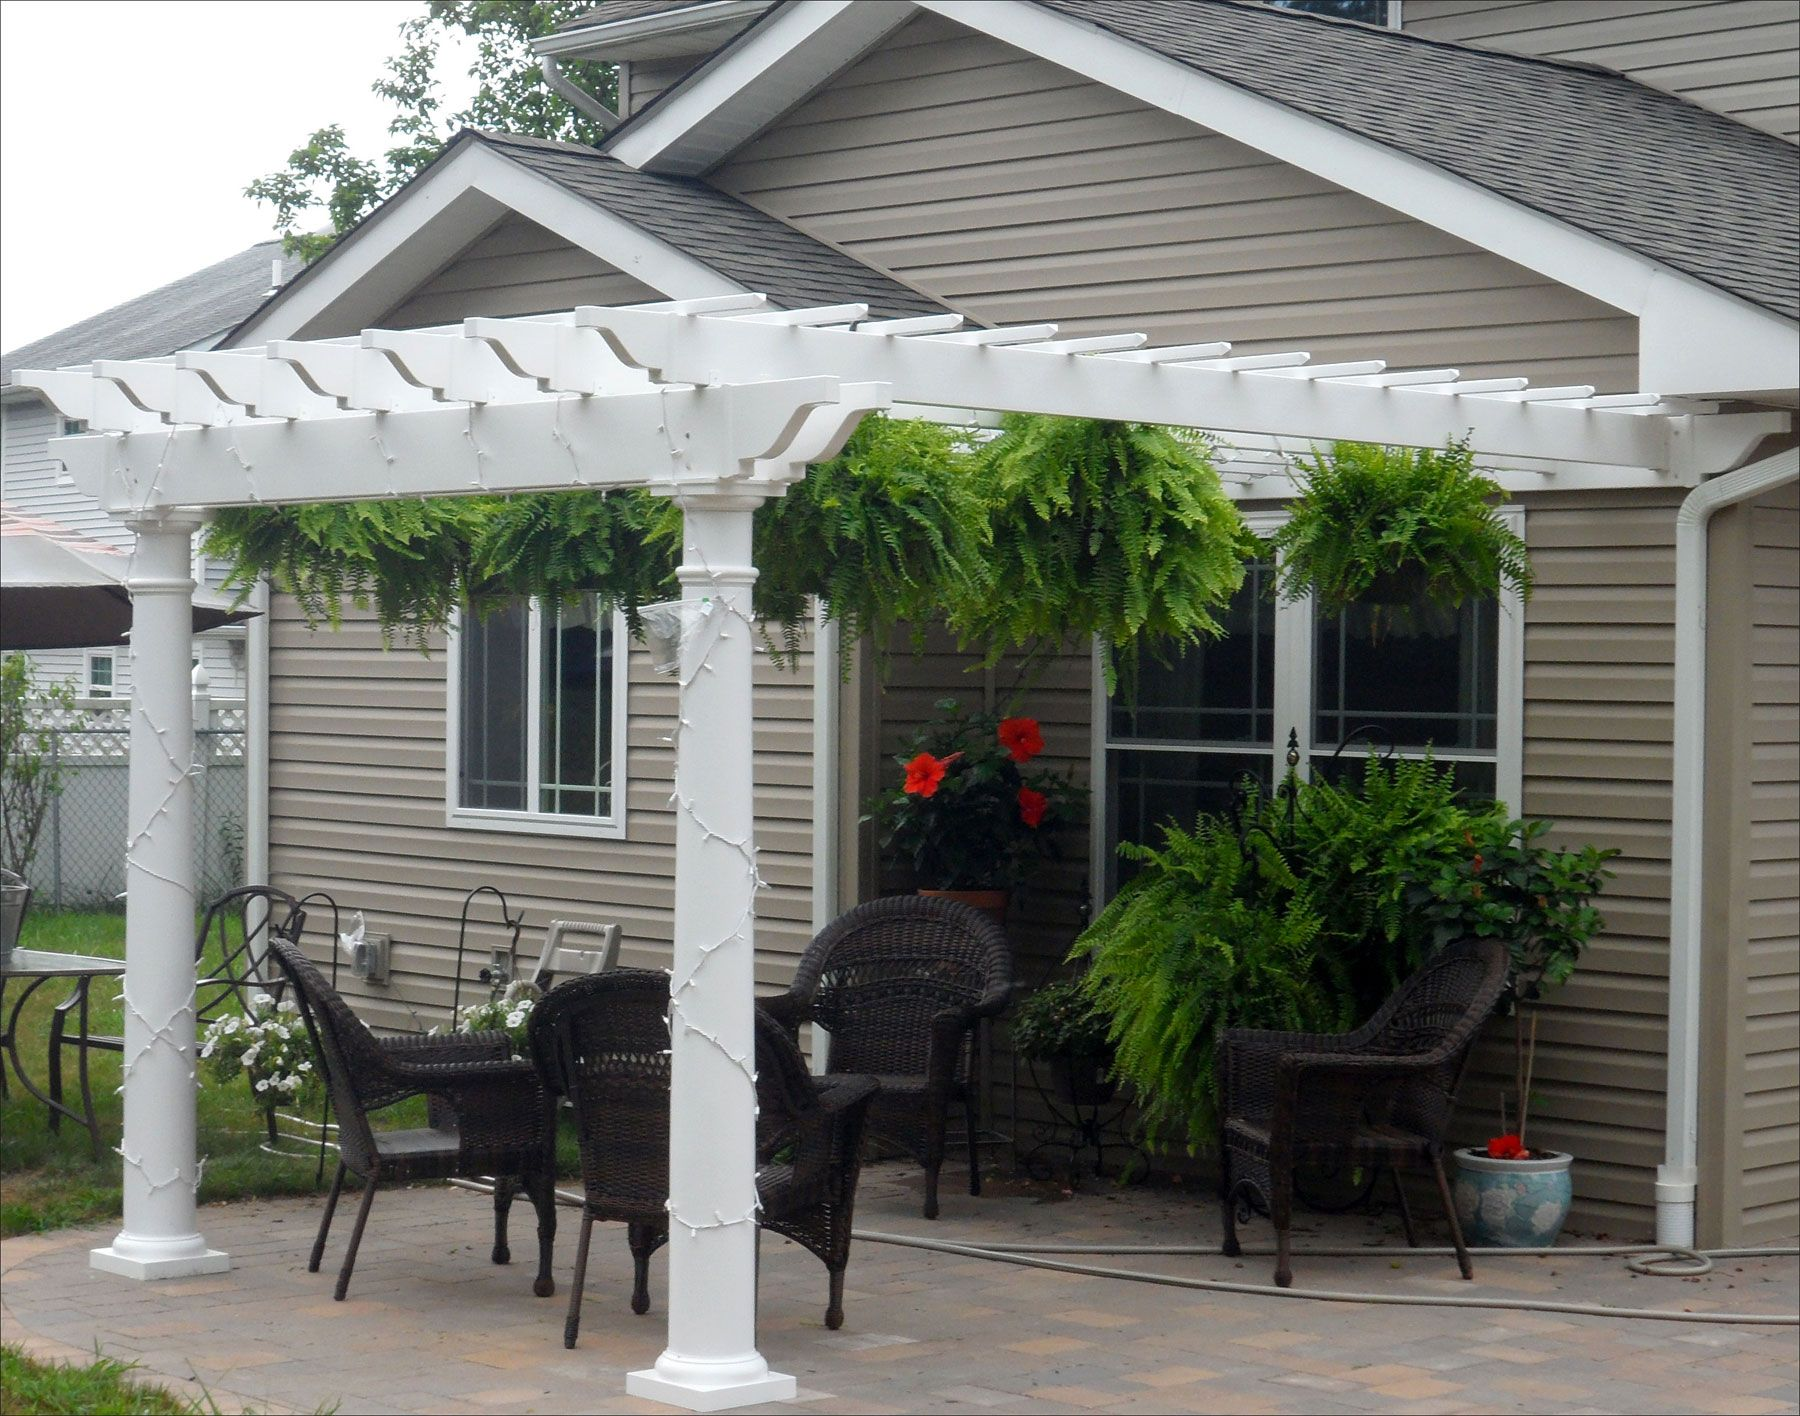 8 X 12 Vinyl 2 Beam Pergola Shown With Wall Mounted Kit No Deck 8 Round Tapered Vinyl Columns And 12 Top Runn Pergola Patio Pergola Plans Backyard Pergola